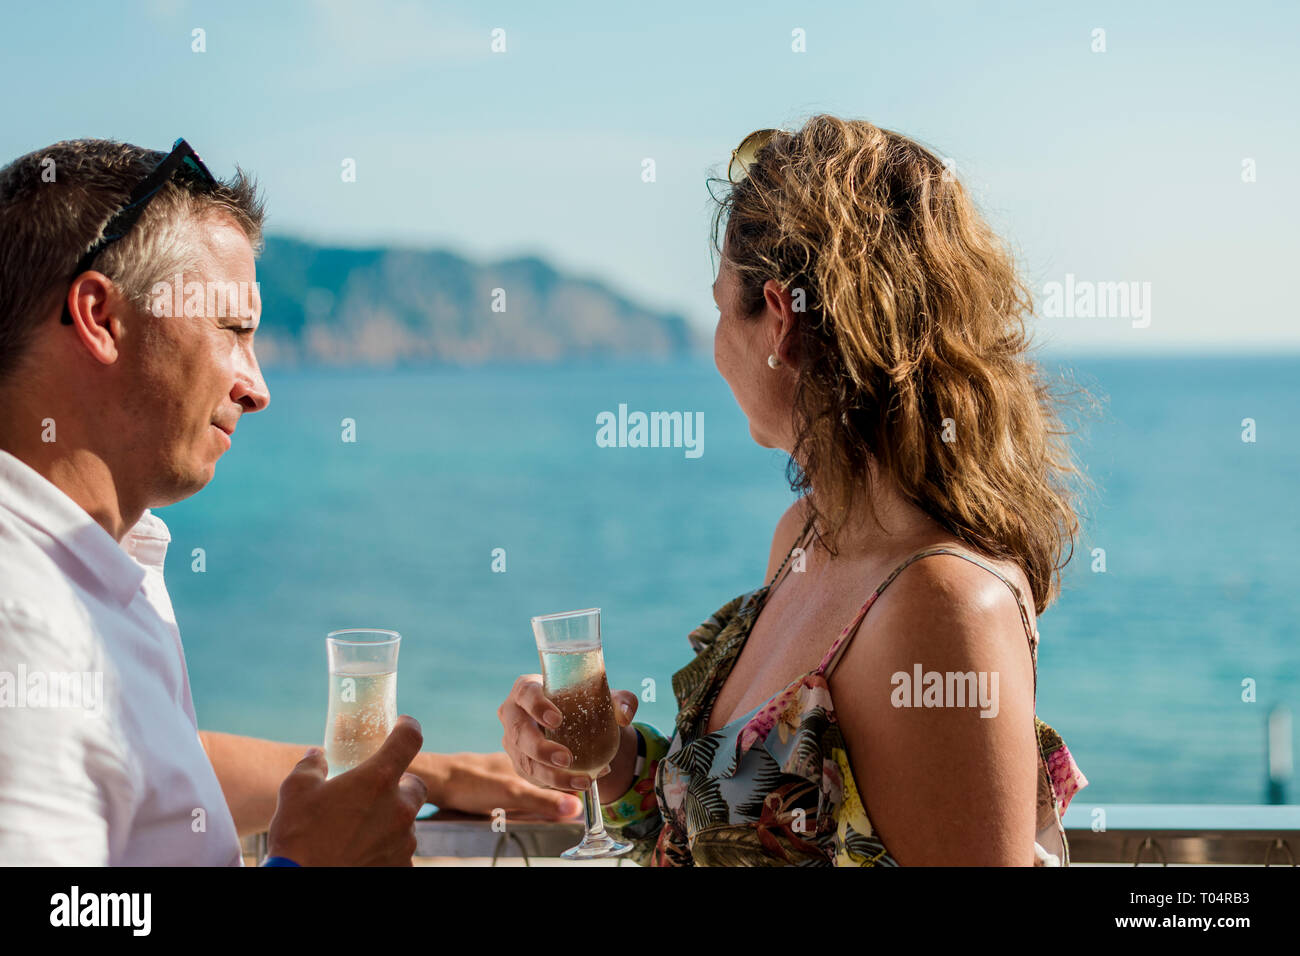 champagne and sea - Stock Image